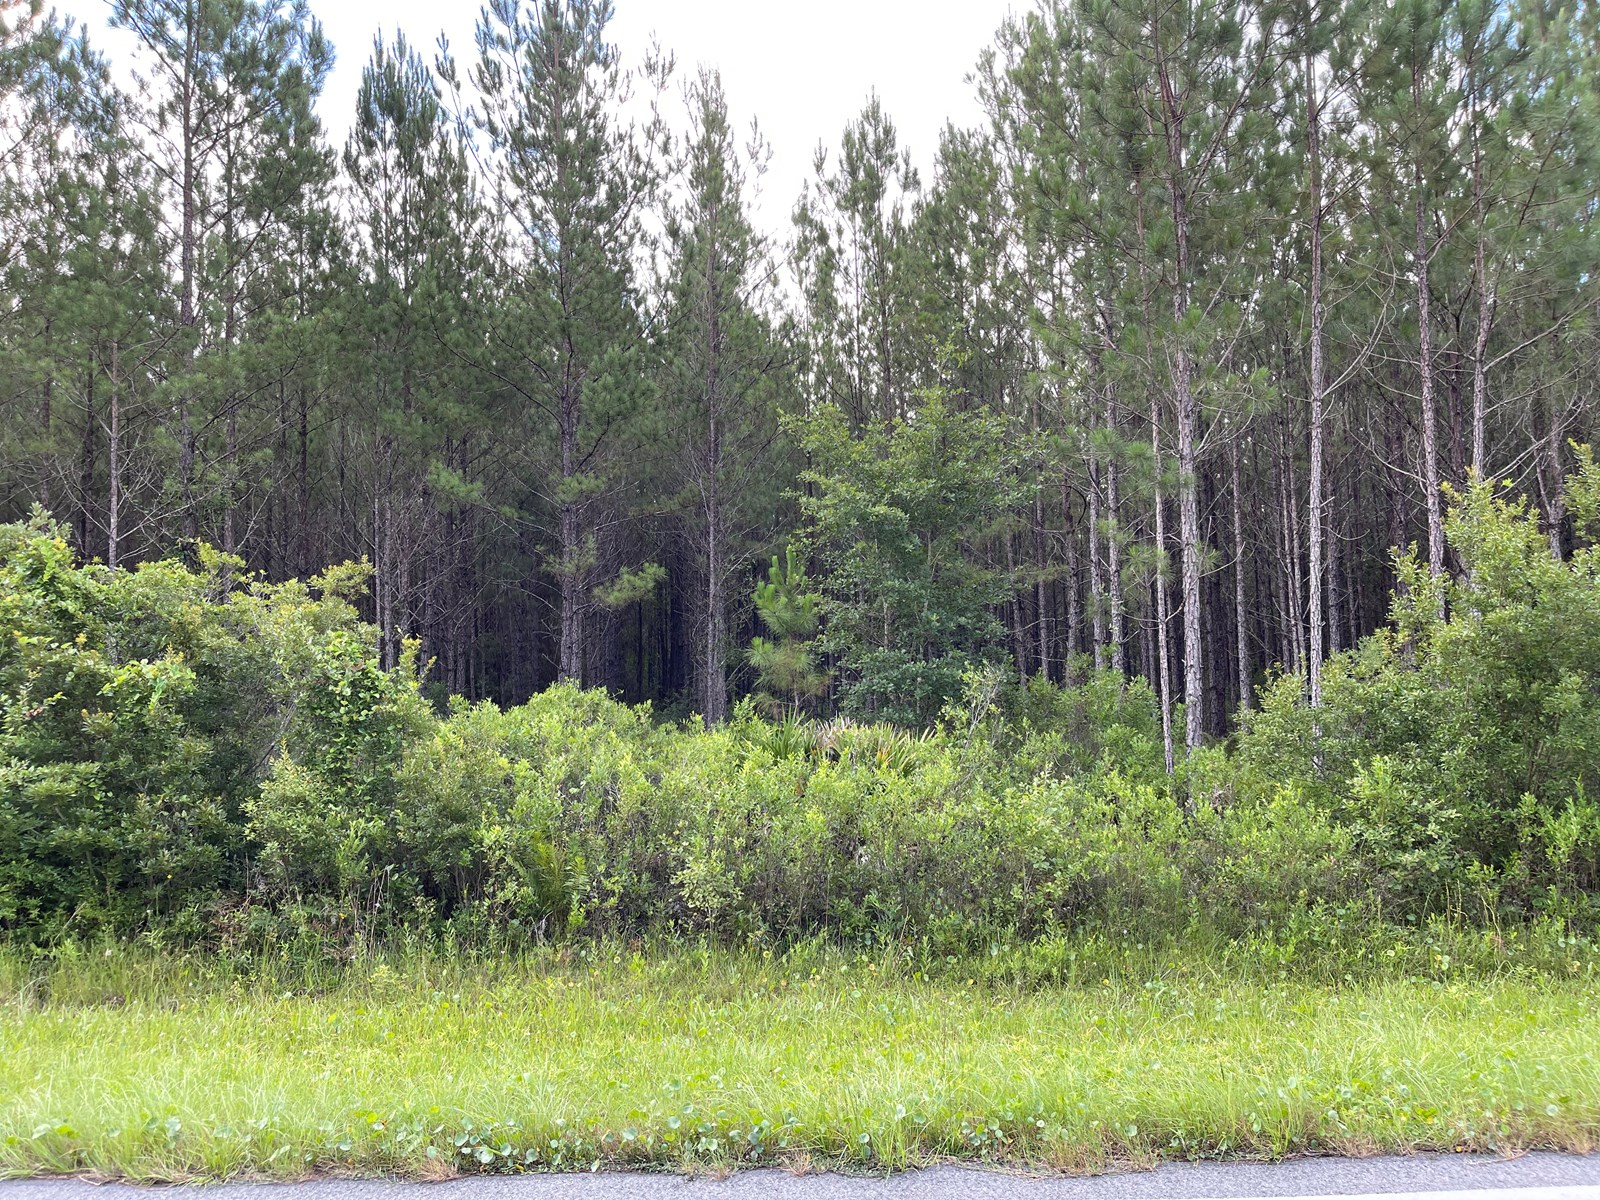 13 ACRES WITH PLANTED PINES IN LULU, FL FOR SALE